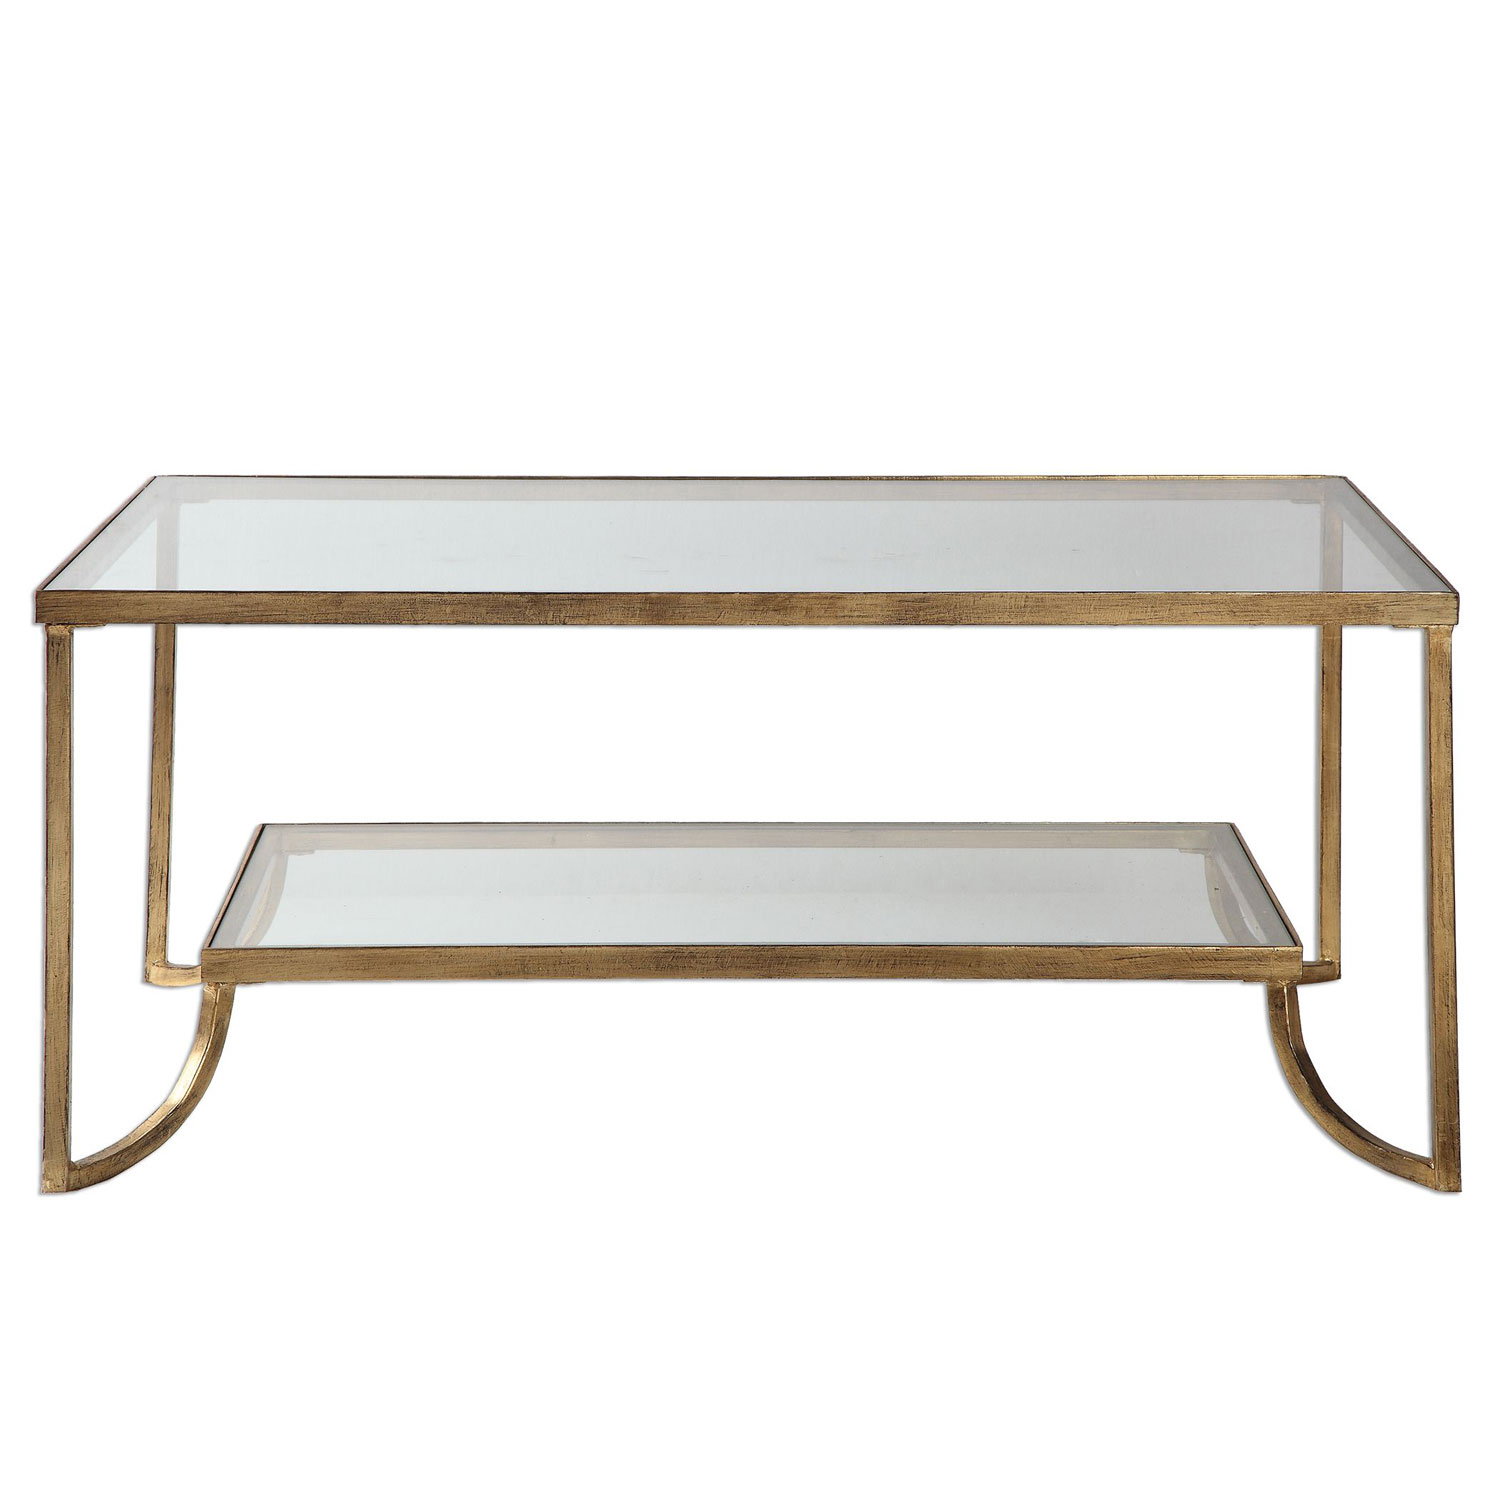 uttermost katina gold leaf coffee table bellacor antique accent hover zoom stool side dining room chandeliers rectangular furniture cover mirrored cabinets and chests cordless led